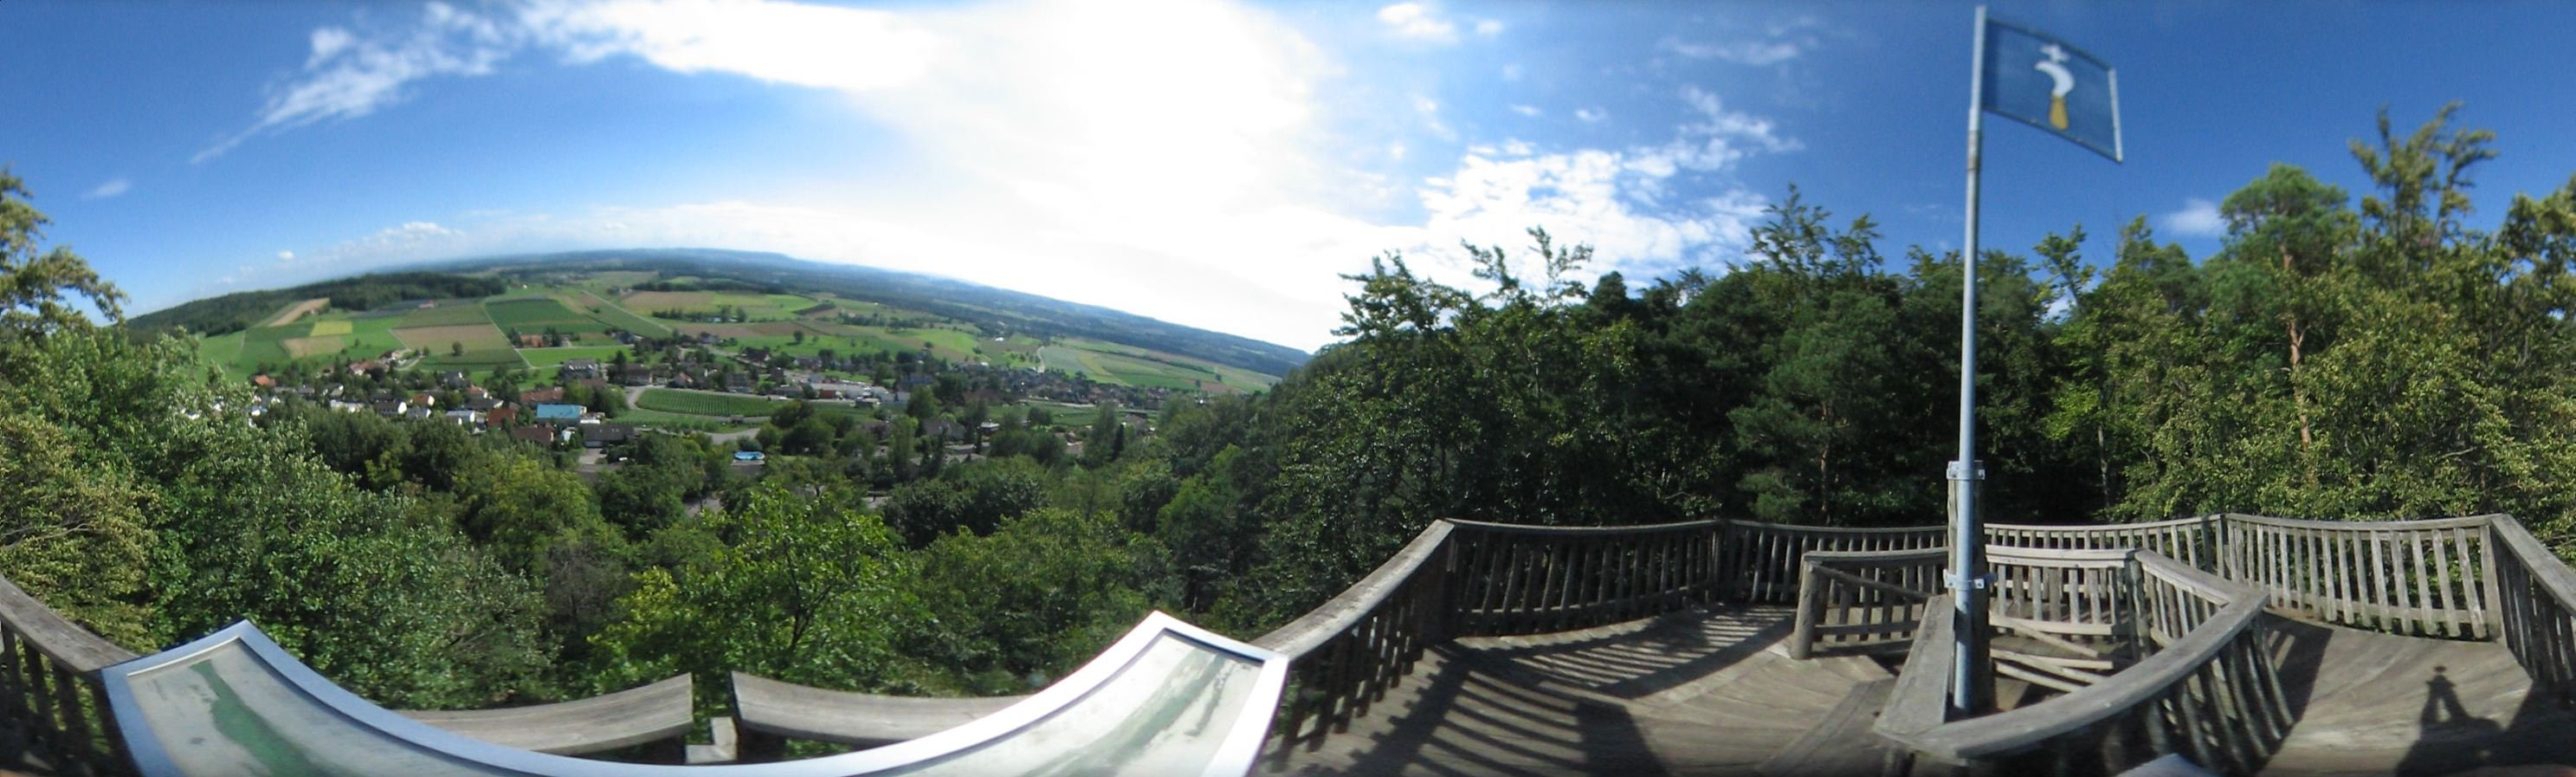 360 degree panoramas in uhwiesen  zwitzerland